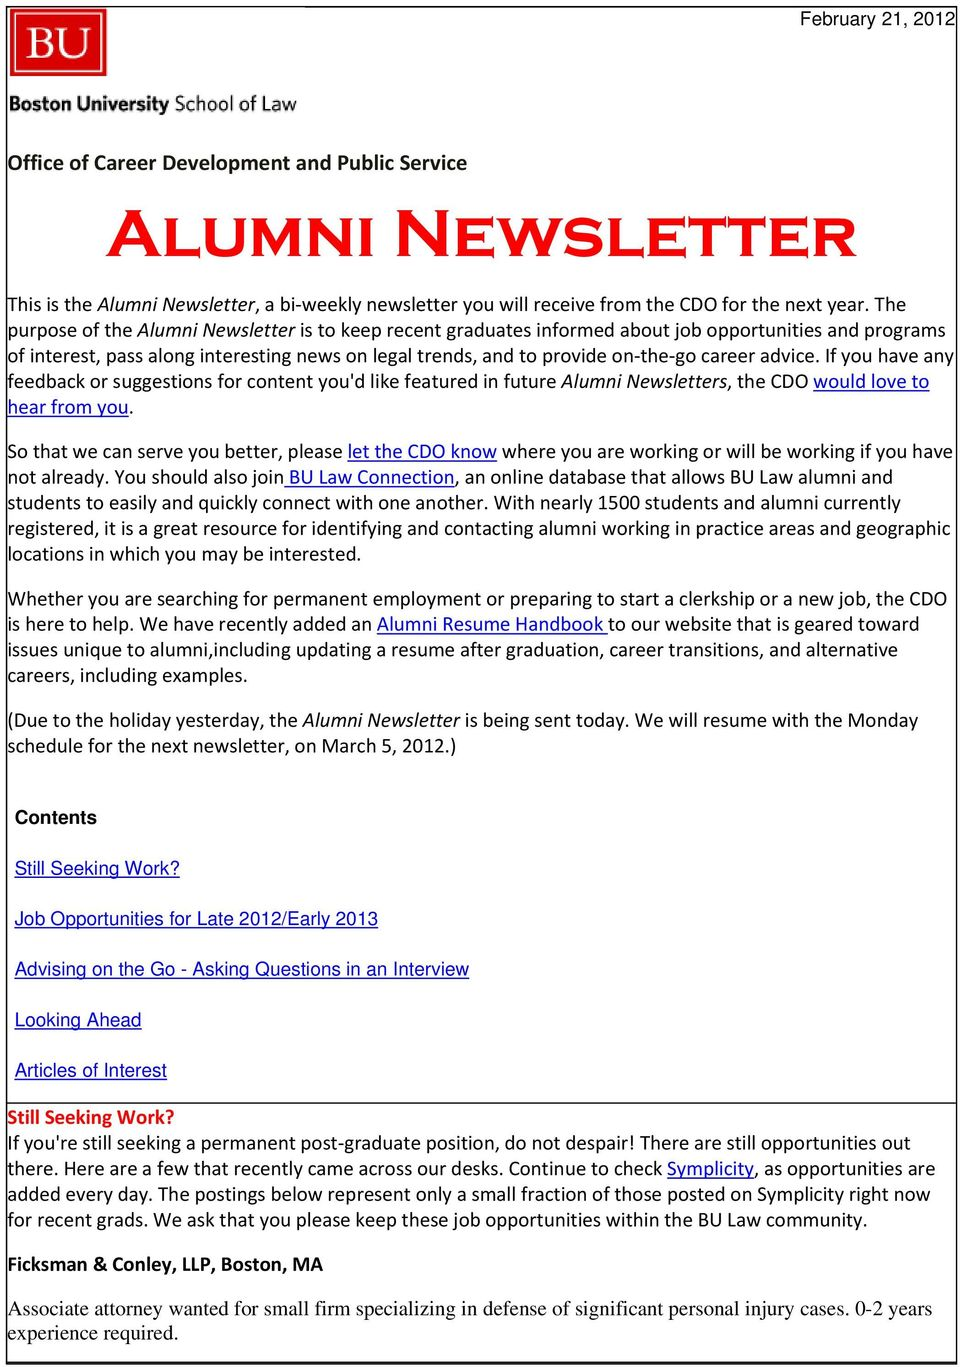 career advice. If you have any feedback or suggestions for content you'd like featured in future Alumni Newsletters, the CDO would love to hear from you.